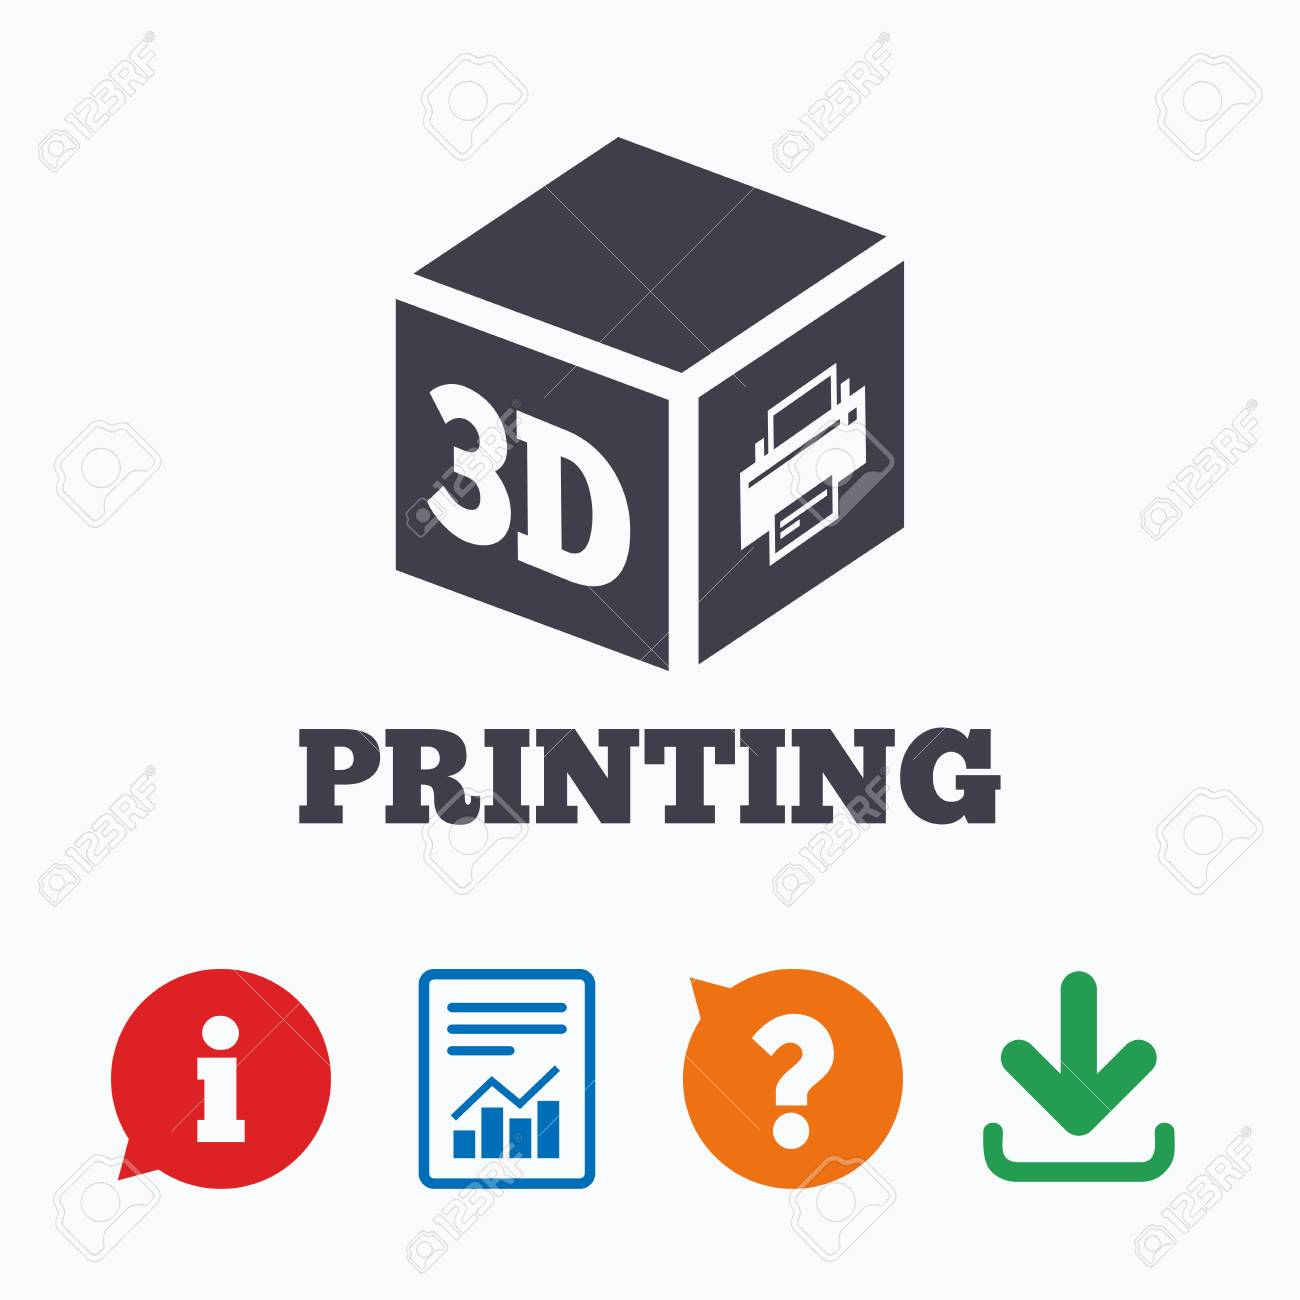 Computers/tablets & Networking Symbol Of The Brand 3d Printing Kit 3d Printers & Supplies